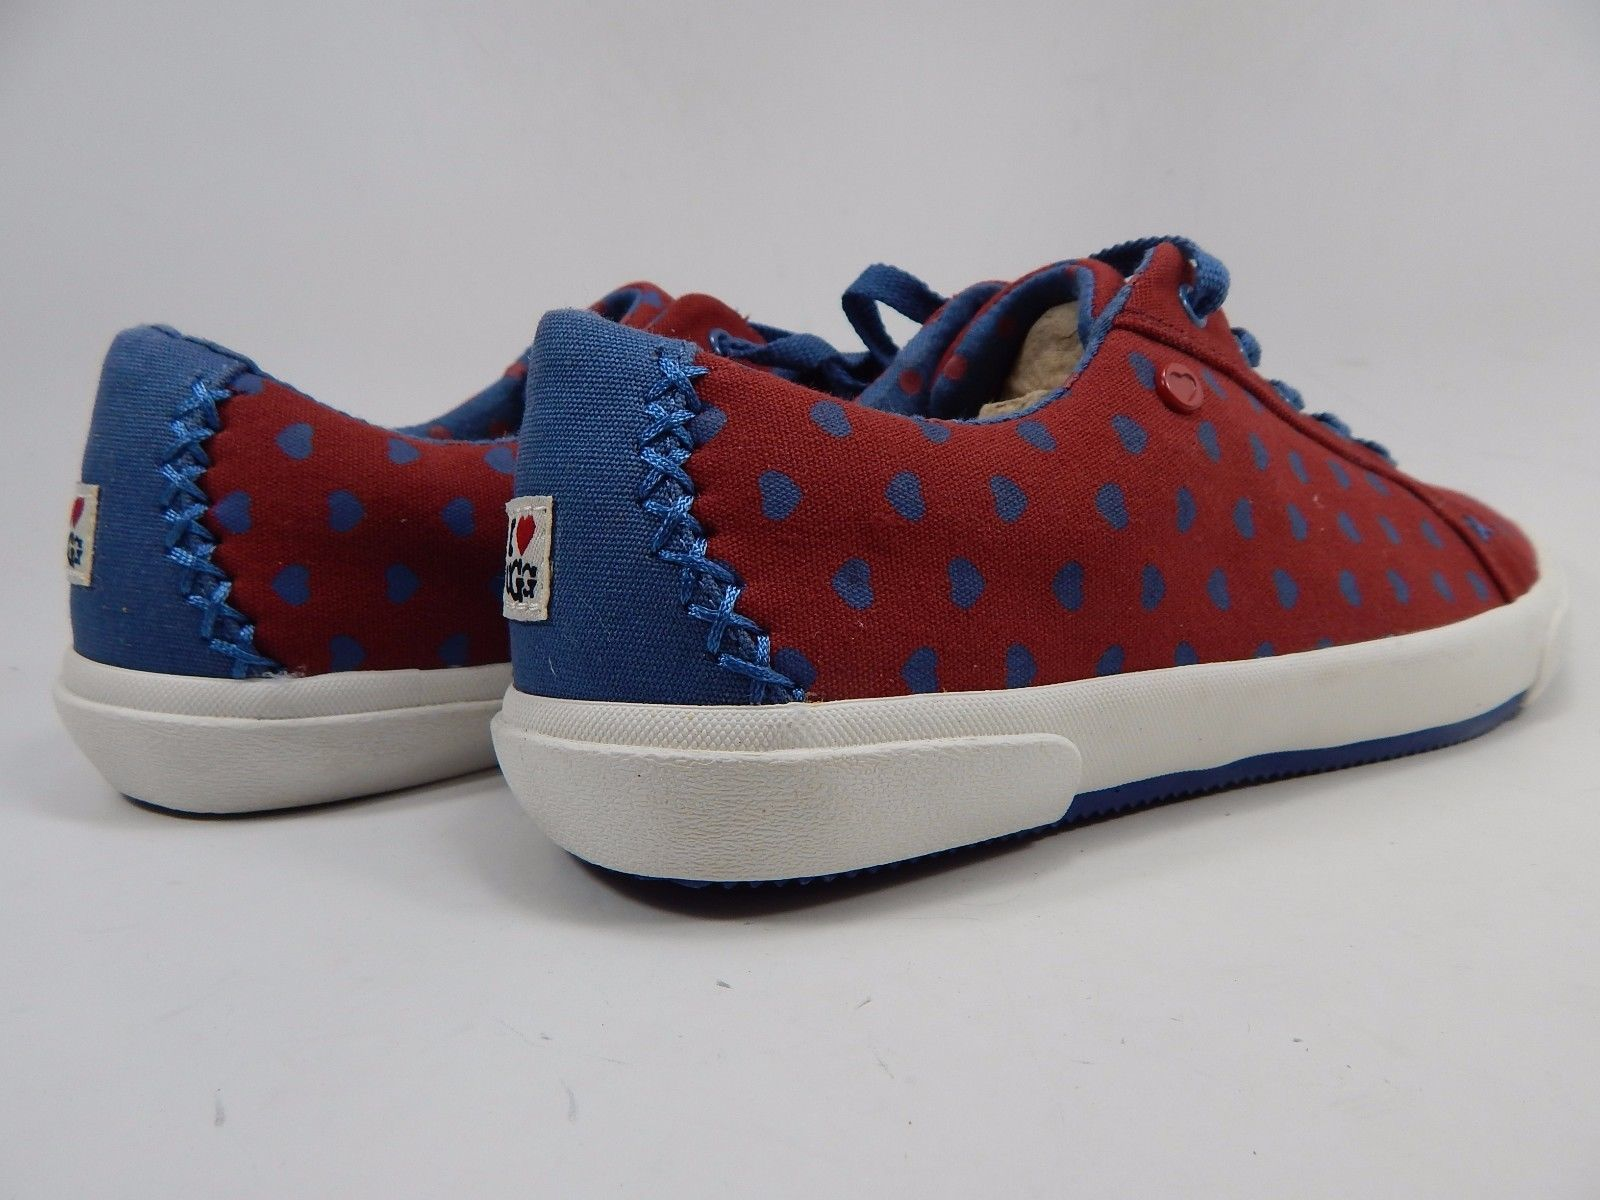 UGG I Heart Lace Up Sneakers Shoes Women's Size 7 M 1008153 Luxe Red / Blue Moon